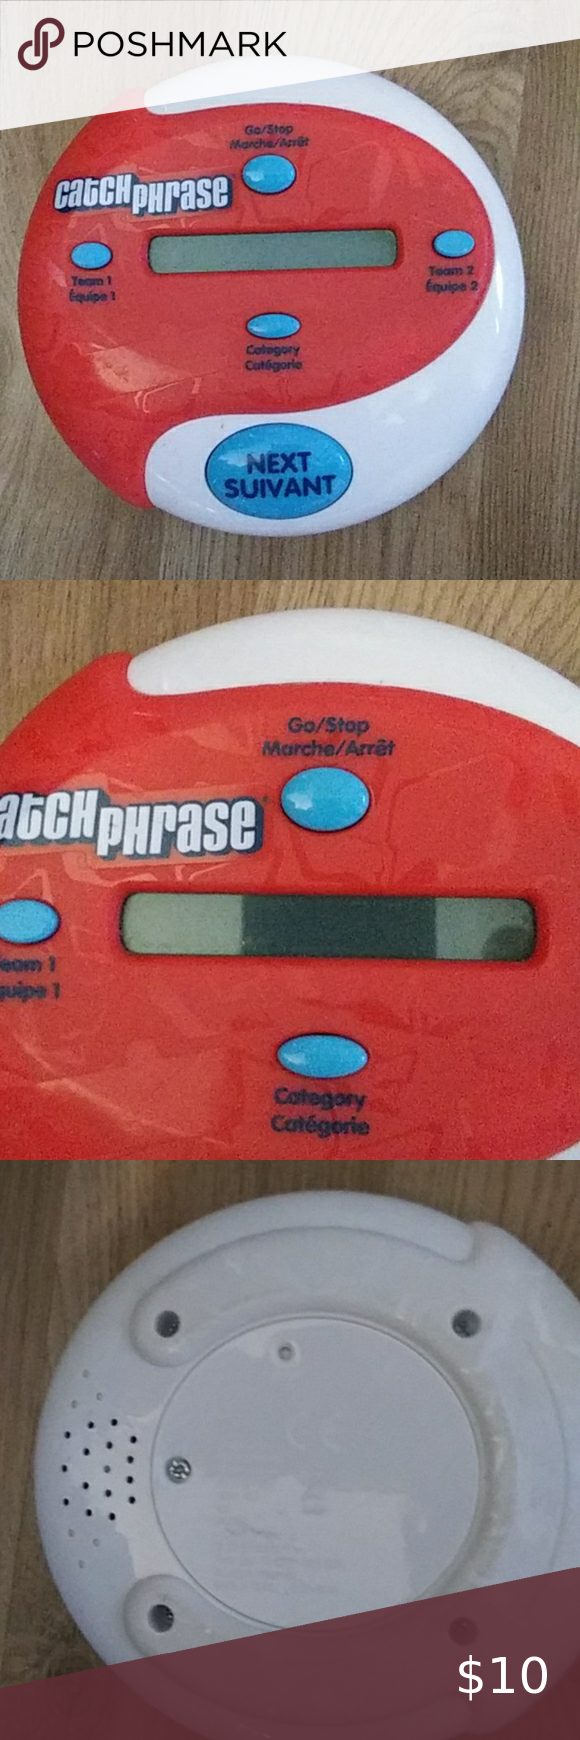 5/25 catch phrase game hand held Tested works no